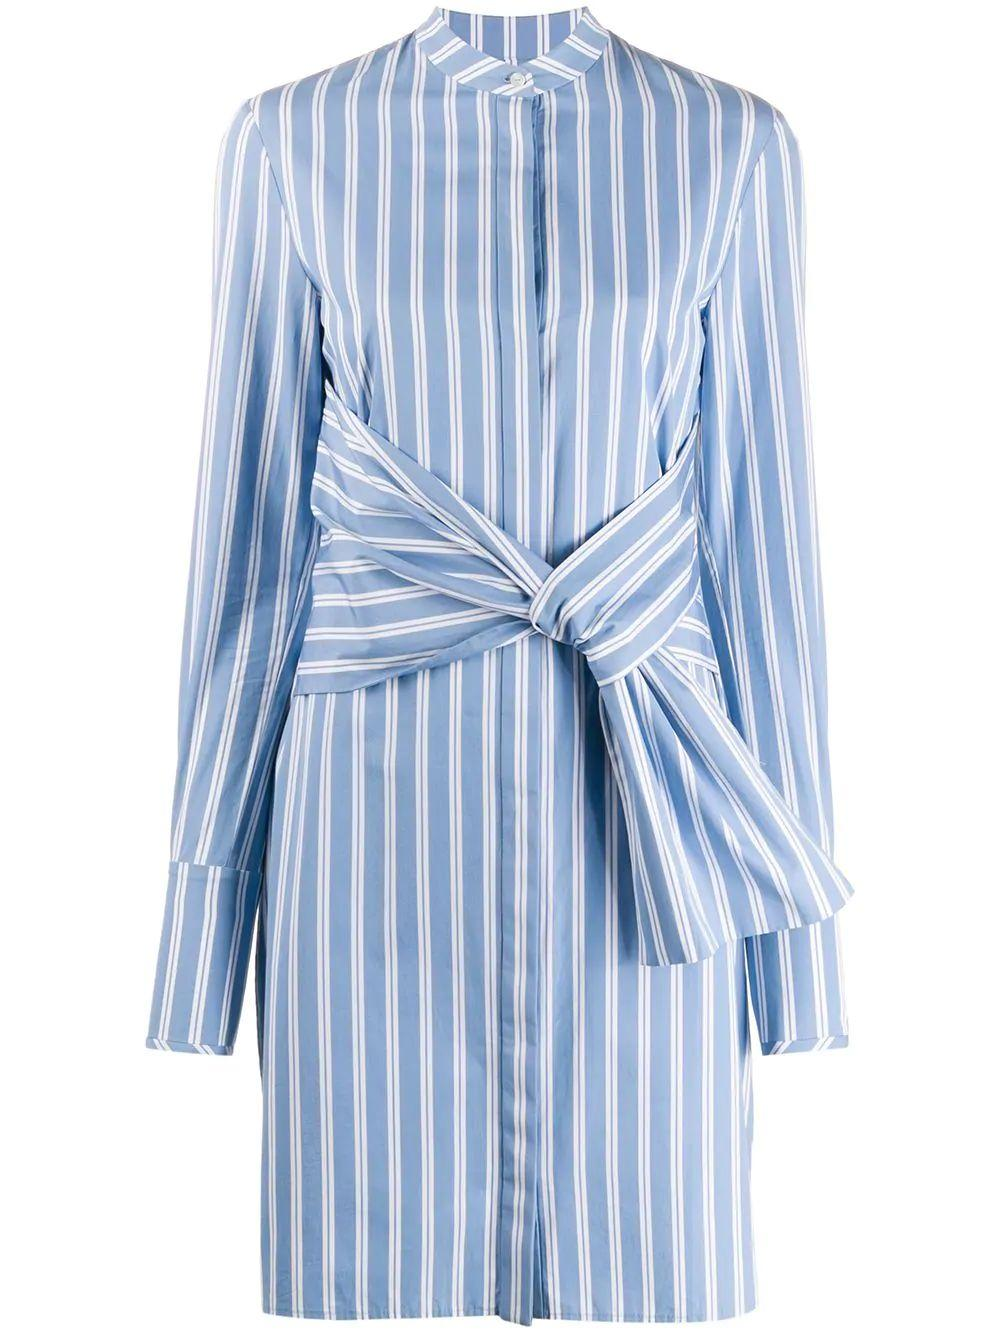 Long Sleeve Striped Shirt Dress With Tie Waist Item # 2120WDR000411A